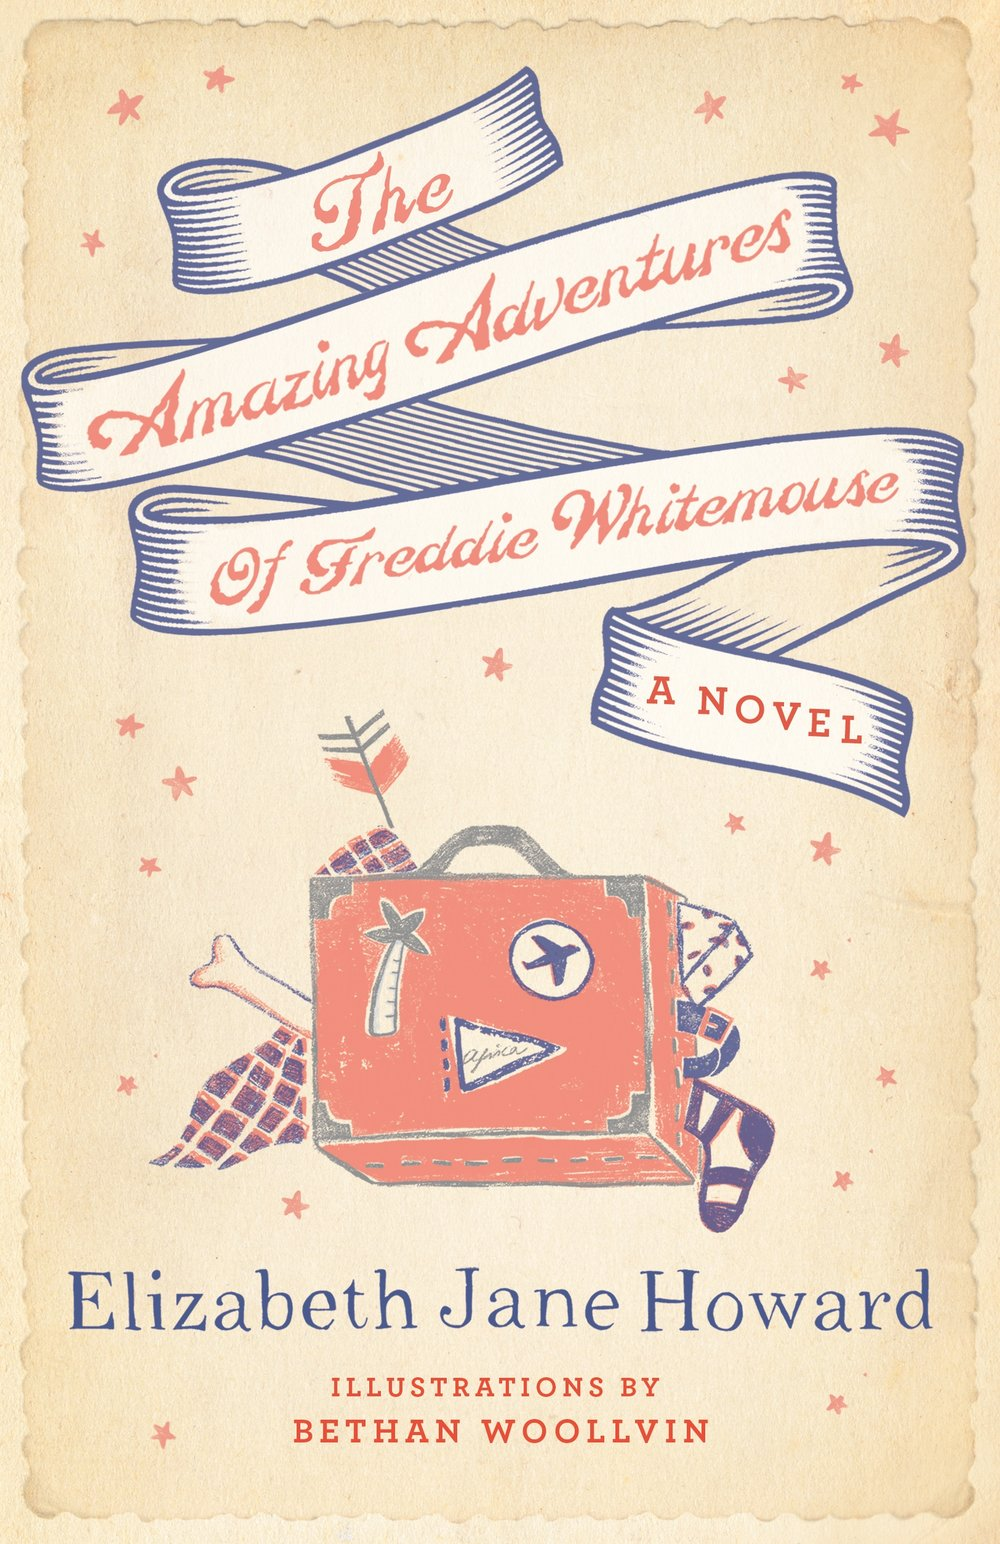 9781447293453The Amazing Adventures of Freddie Whitemouse.jpg